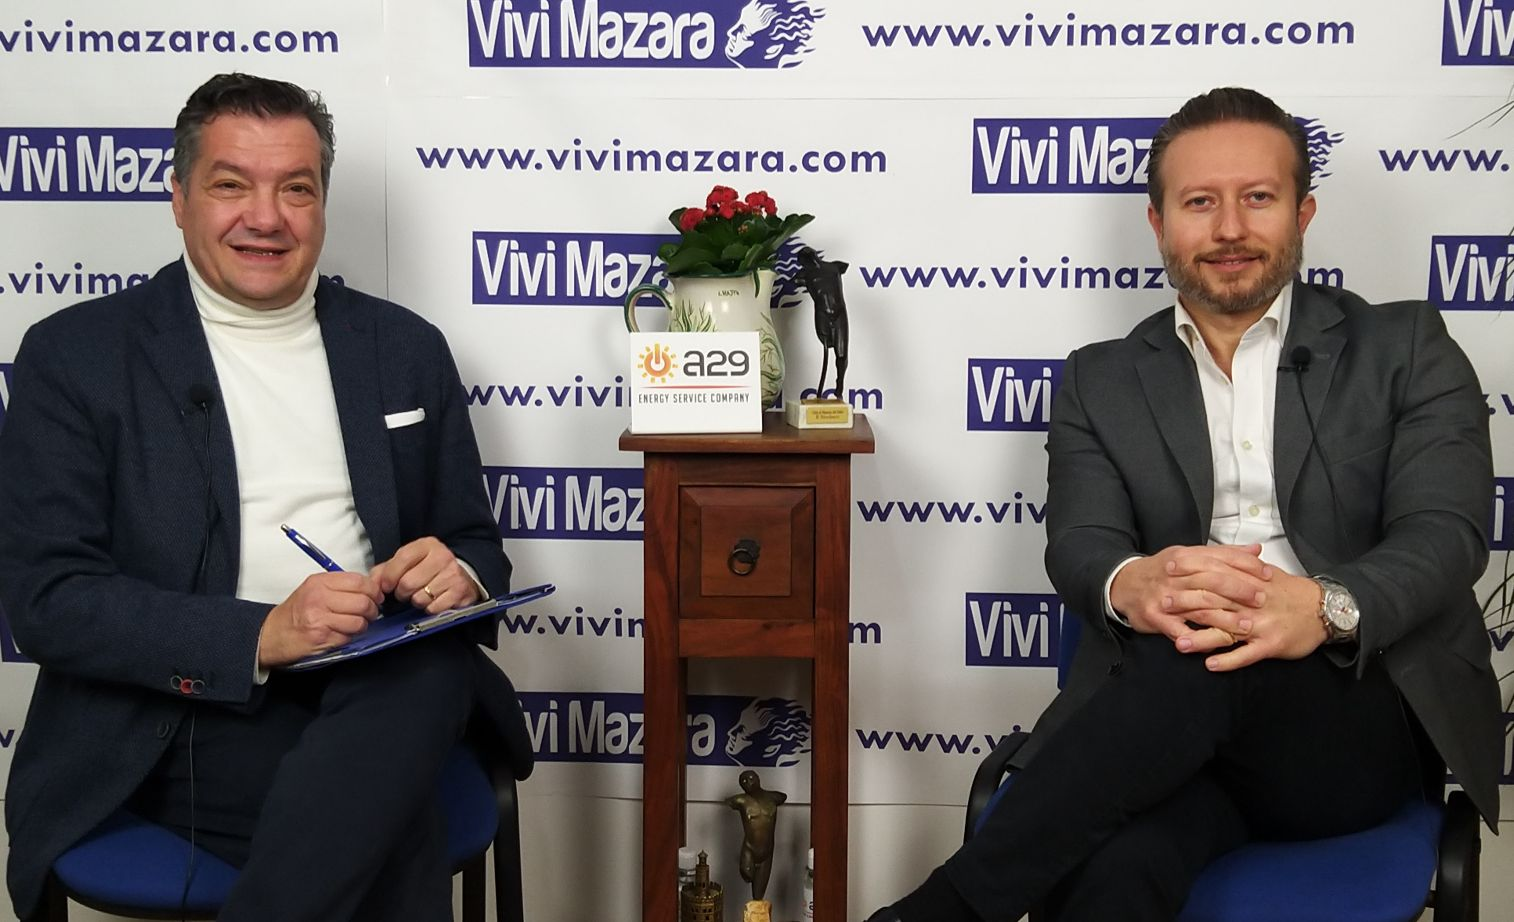 Mazara. VIDEO INTERVISTA CON L'ASSESSORE VINCENZO GIACALONE